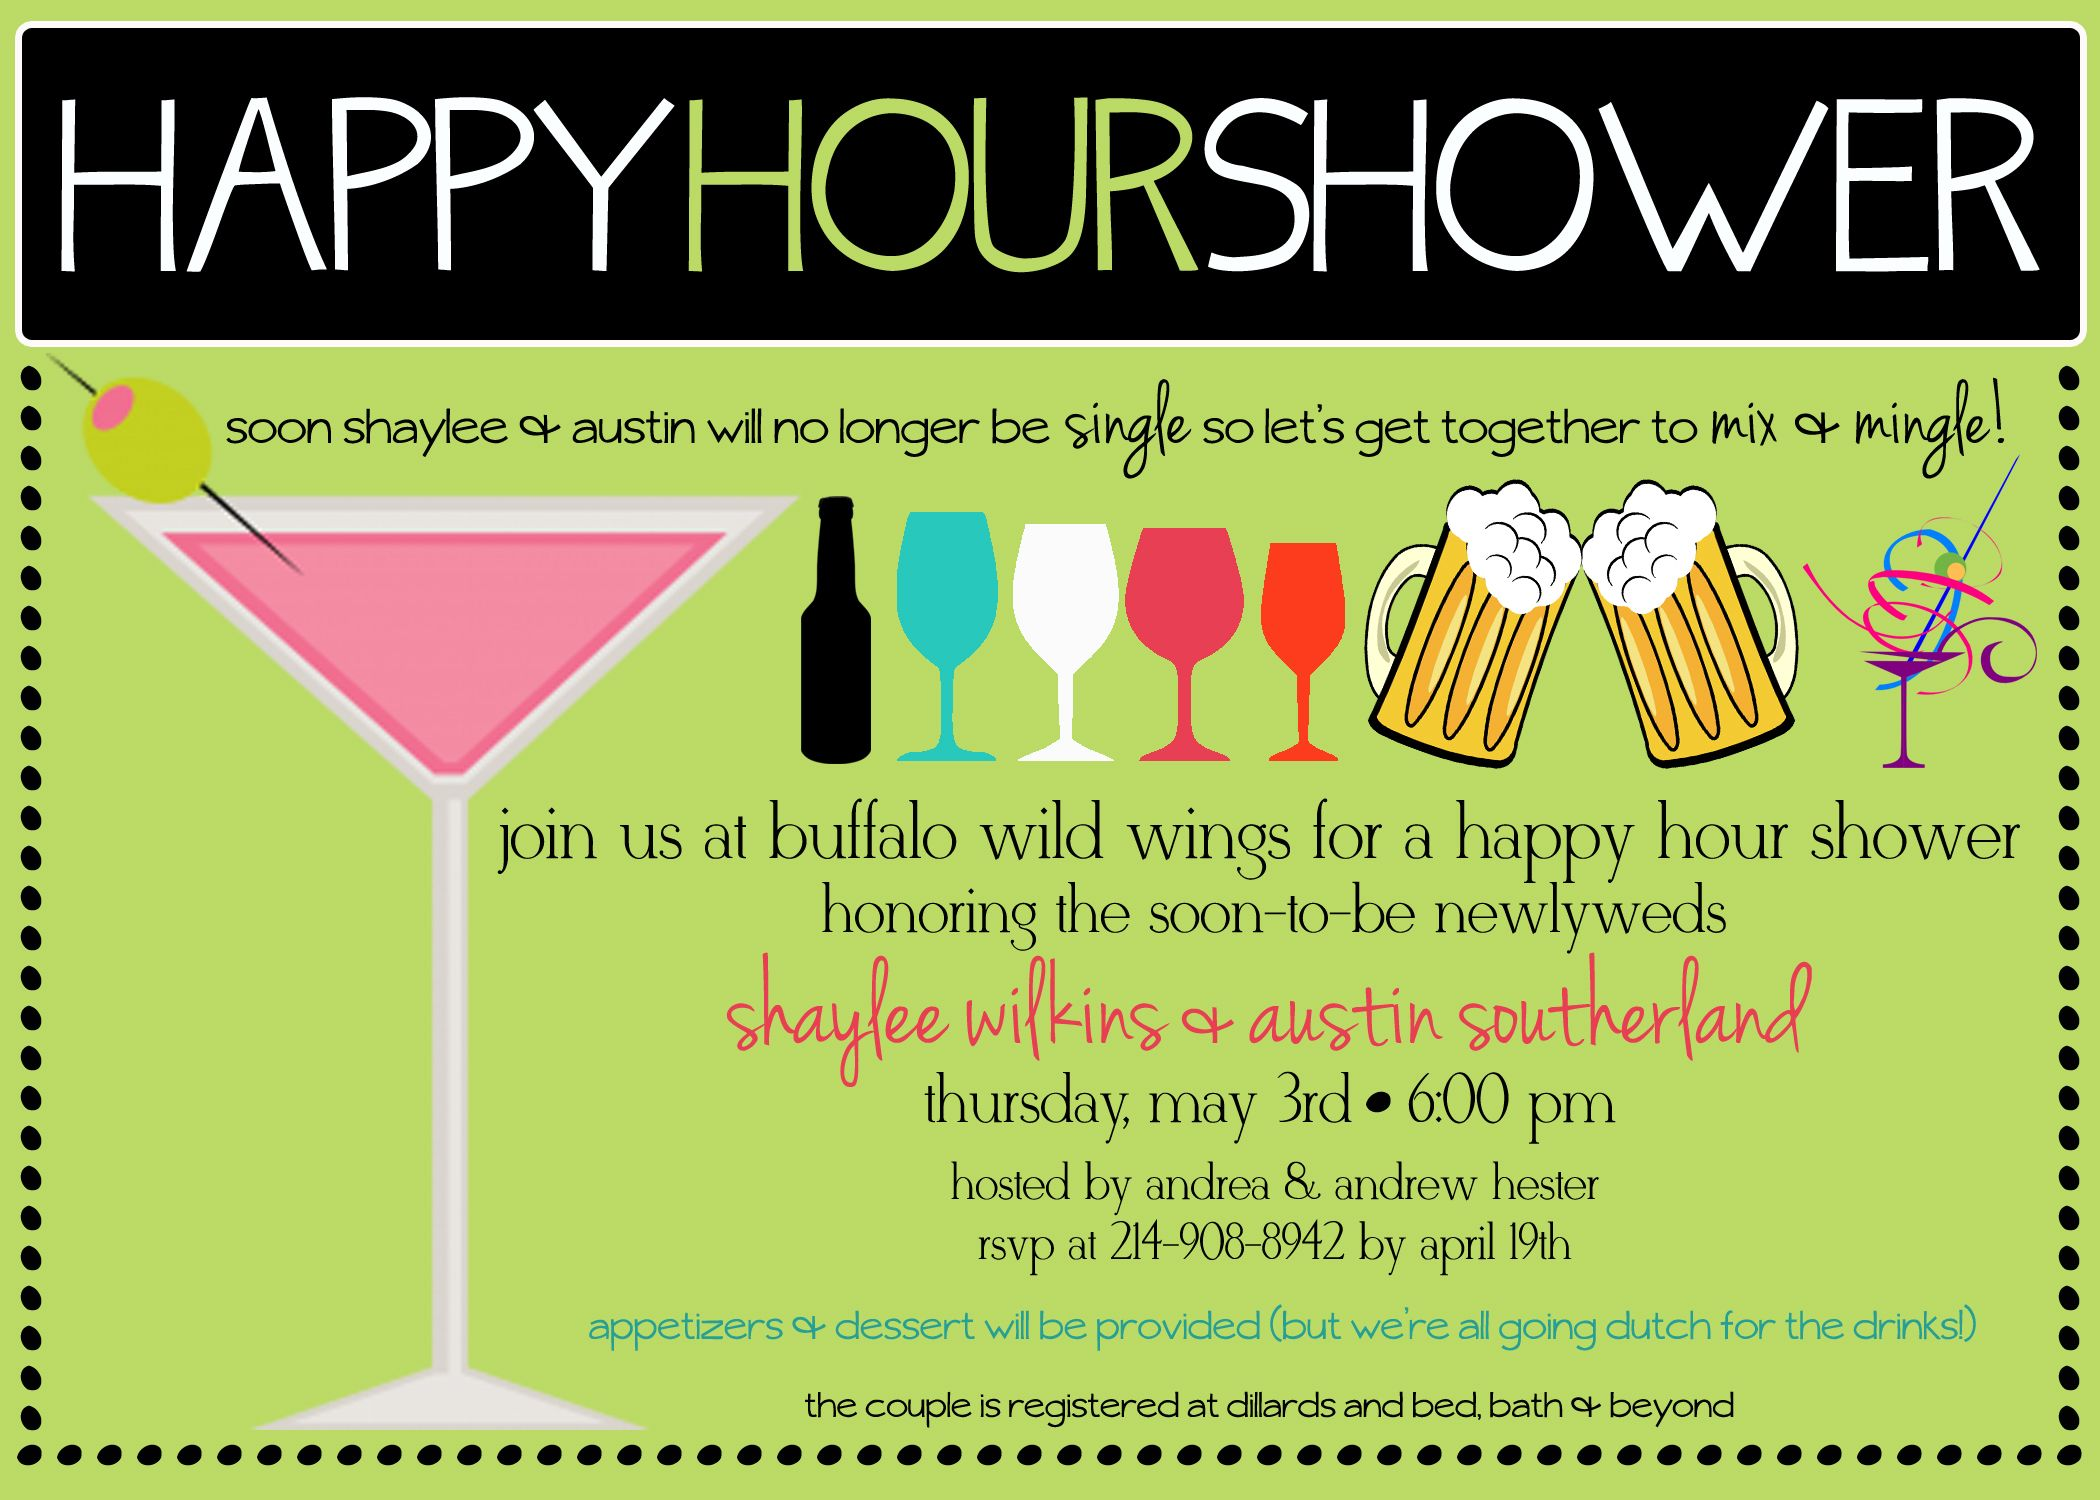 Happy Hour Showersthe Next Big Thing